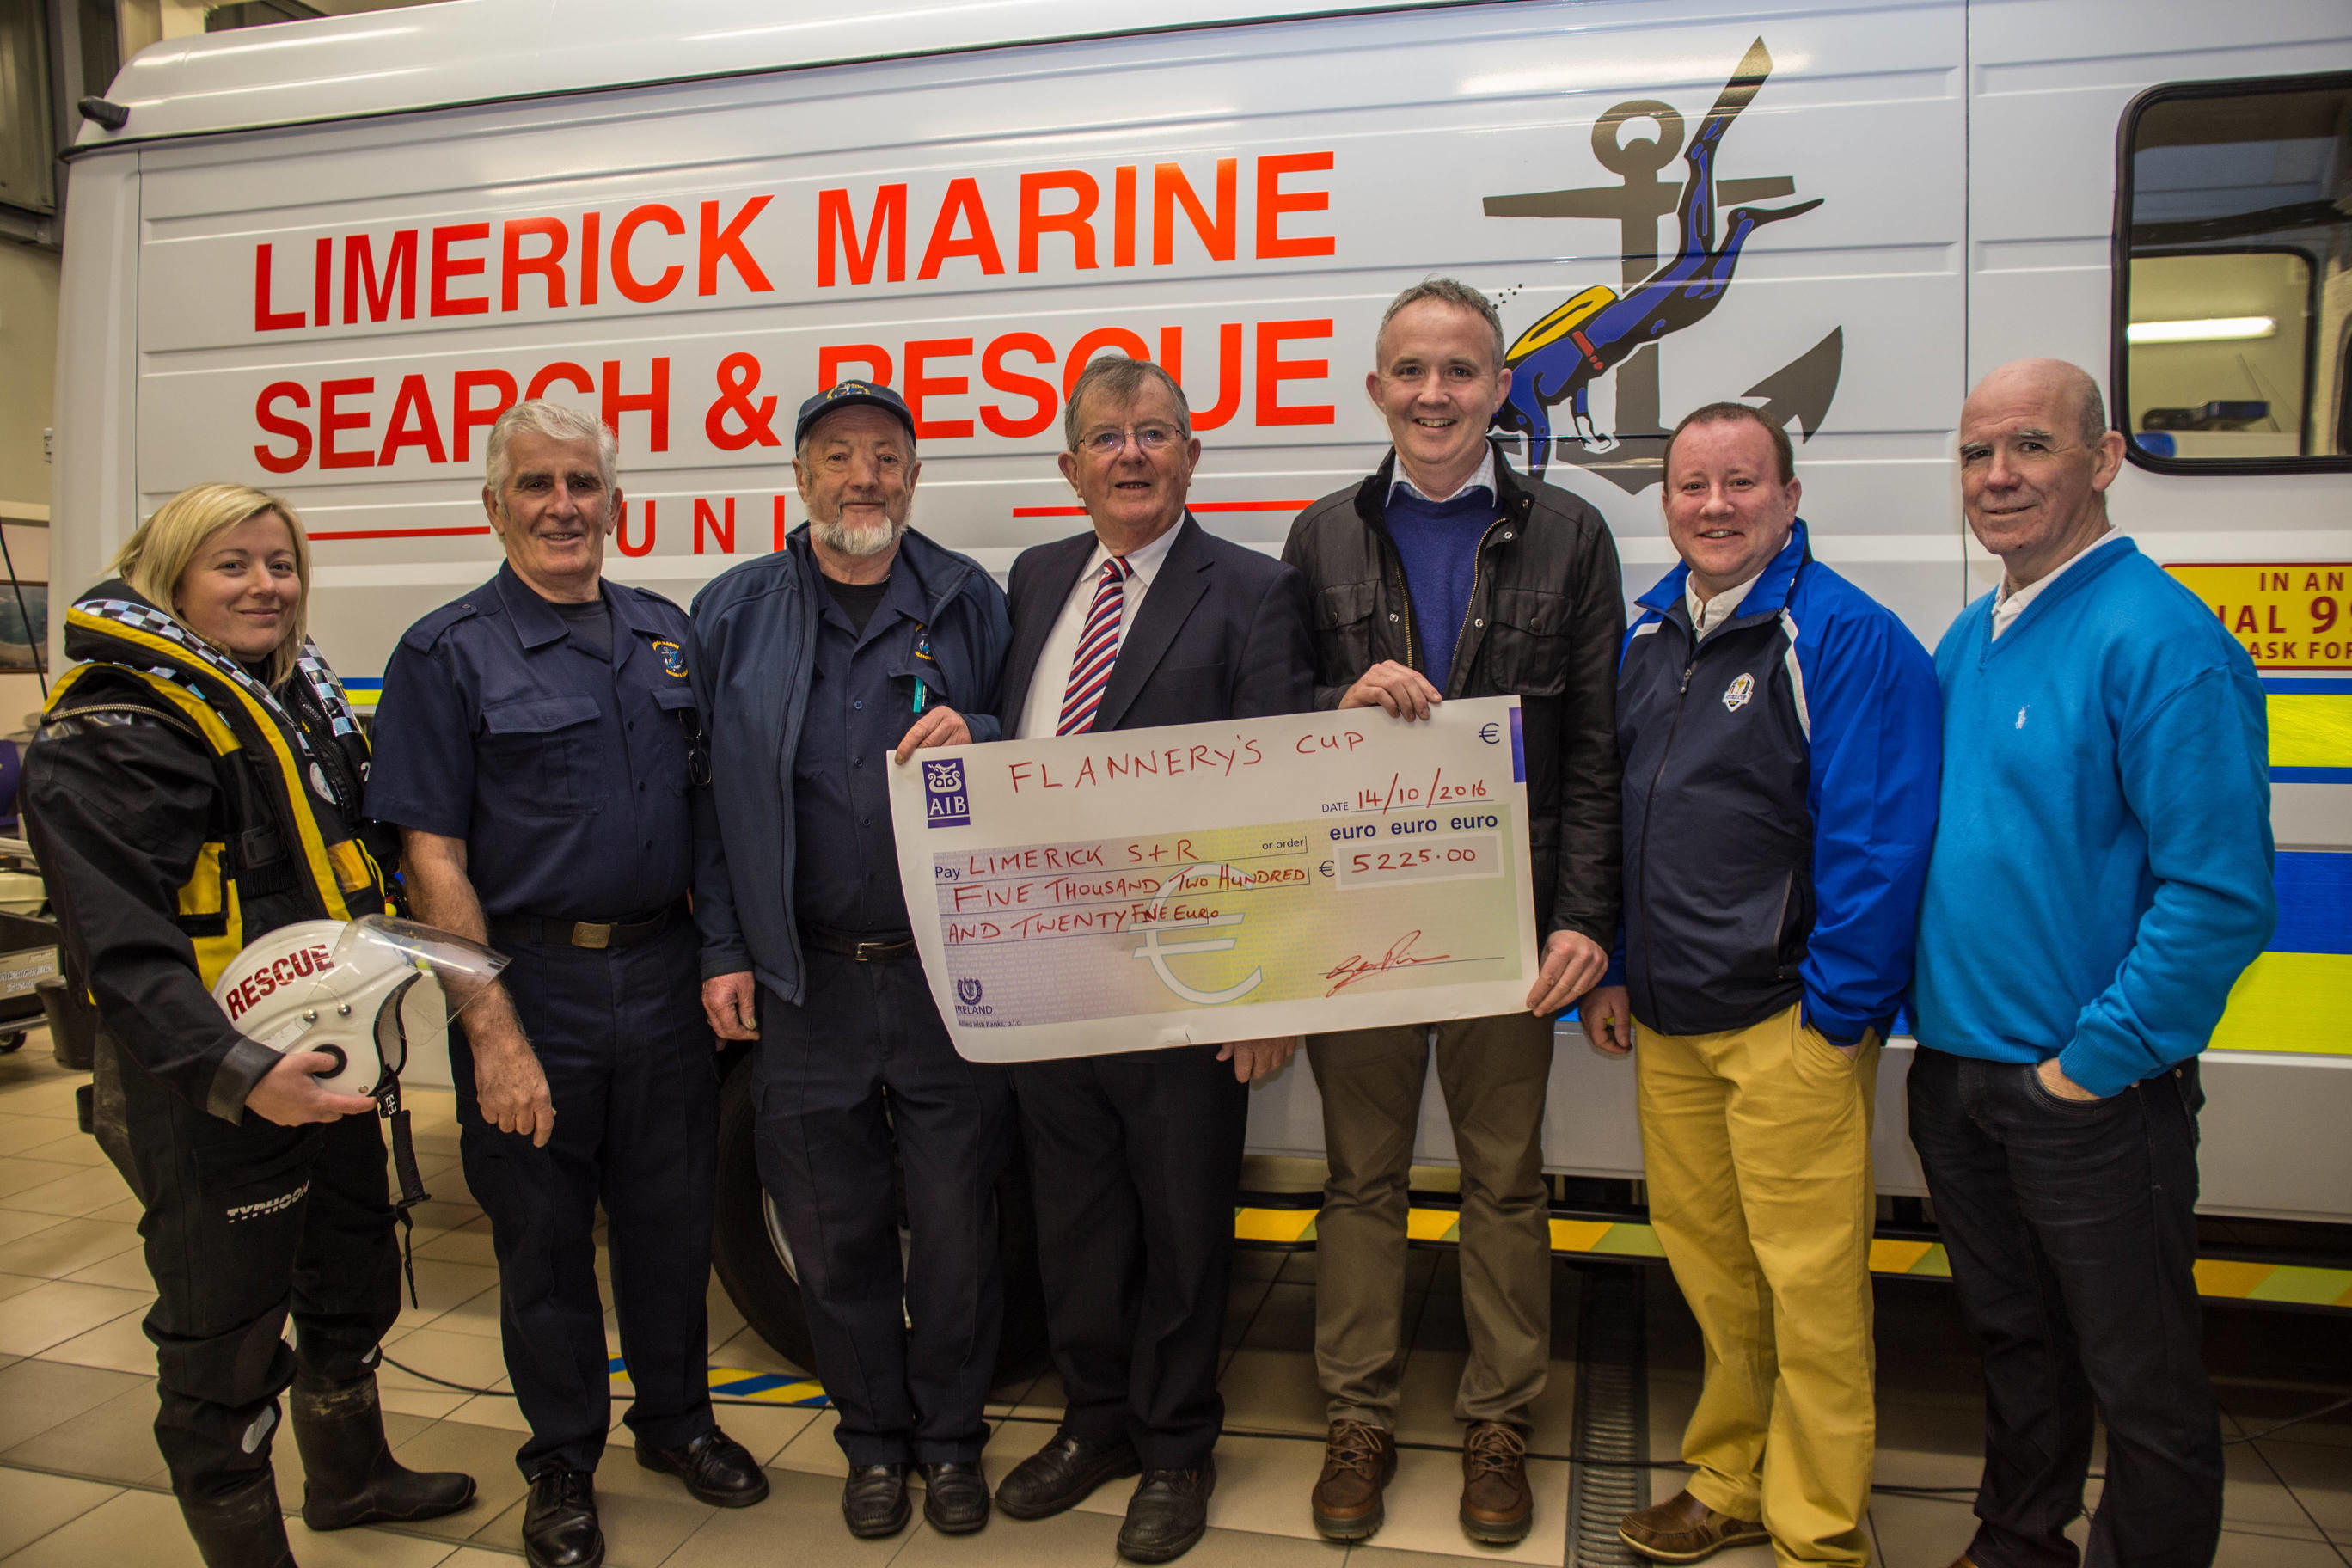 Pat Flannery Golf Classic raise Limerick Marine Search Rescue funds